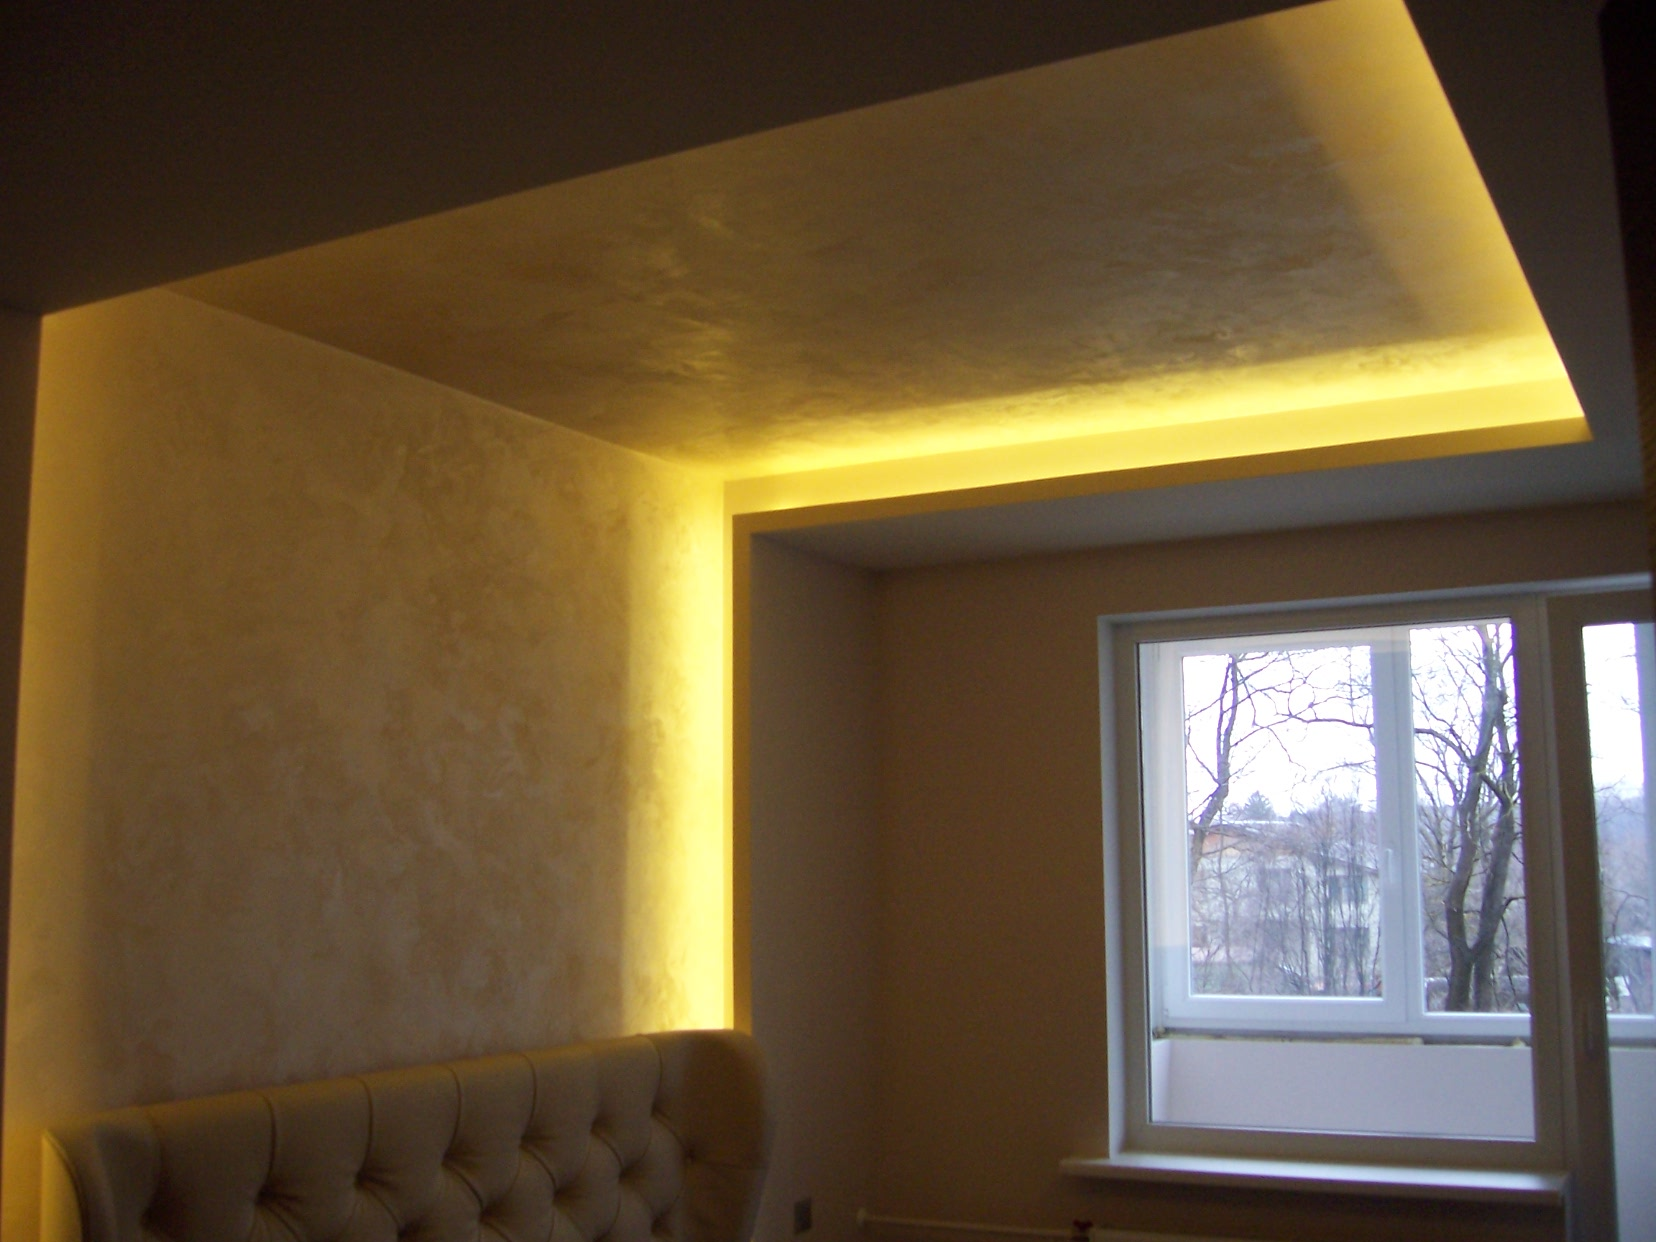 Faire bande a joint plafond quimper estimation travaux for Joint placo sans bande